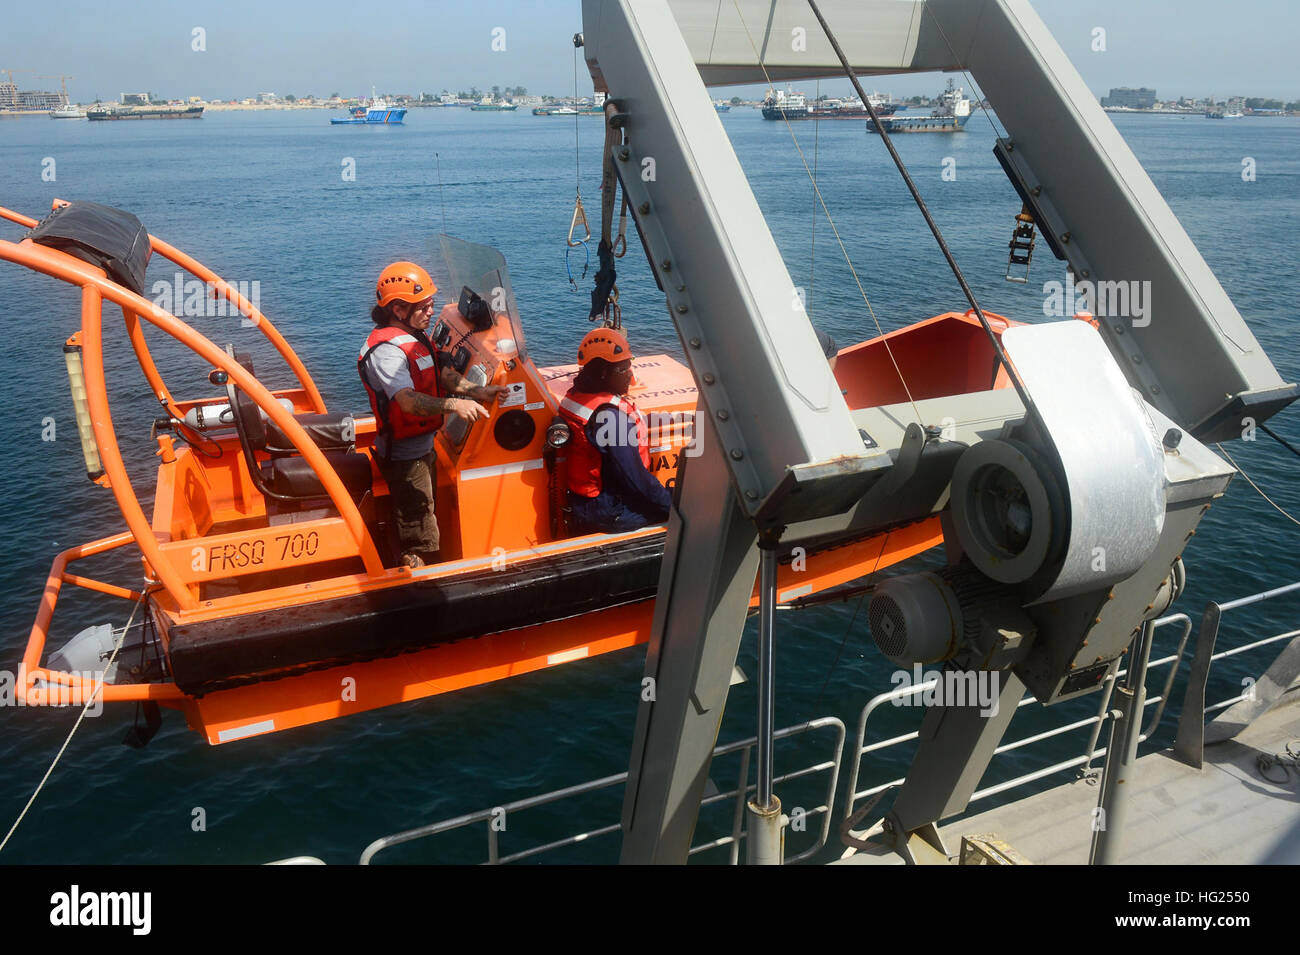 150306-N-RB579-022 LUANDA, Angola (March 6, 2015) Civil service mariners conduct boat recovery operations aboard - Stock Image